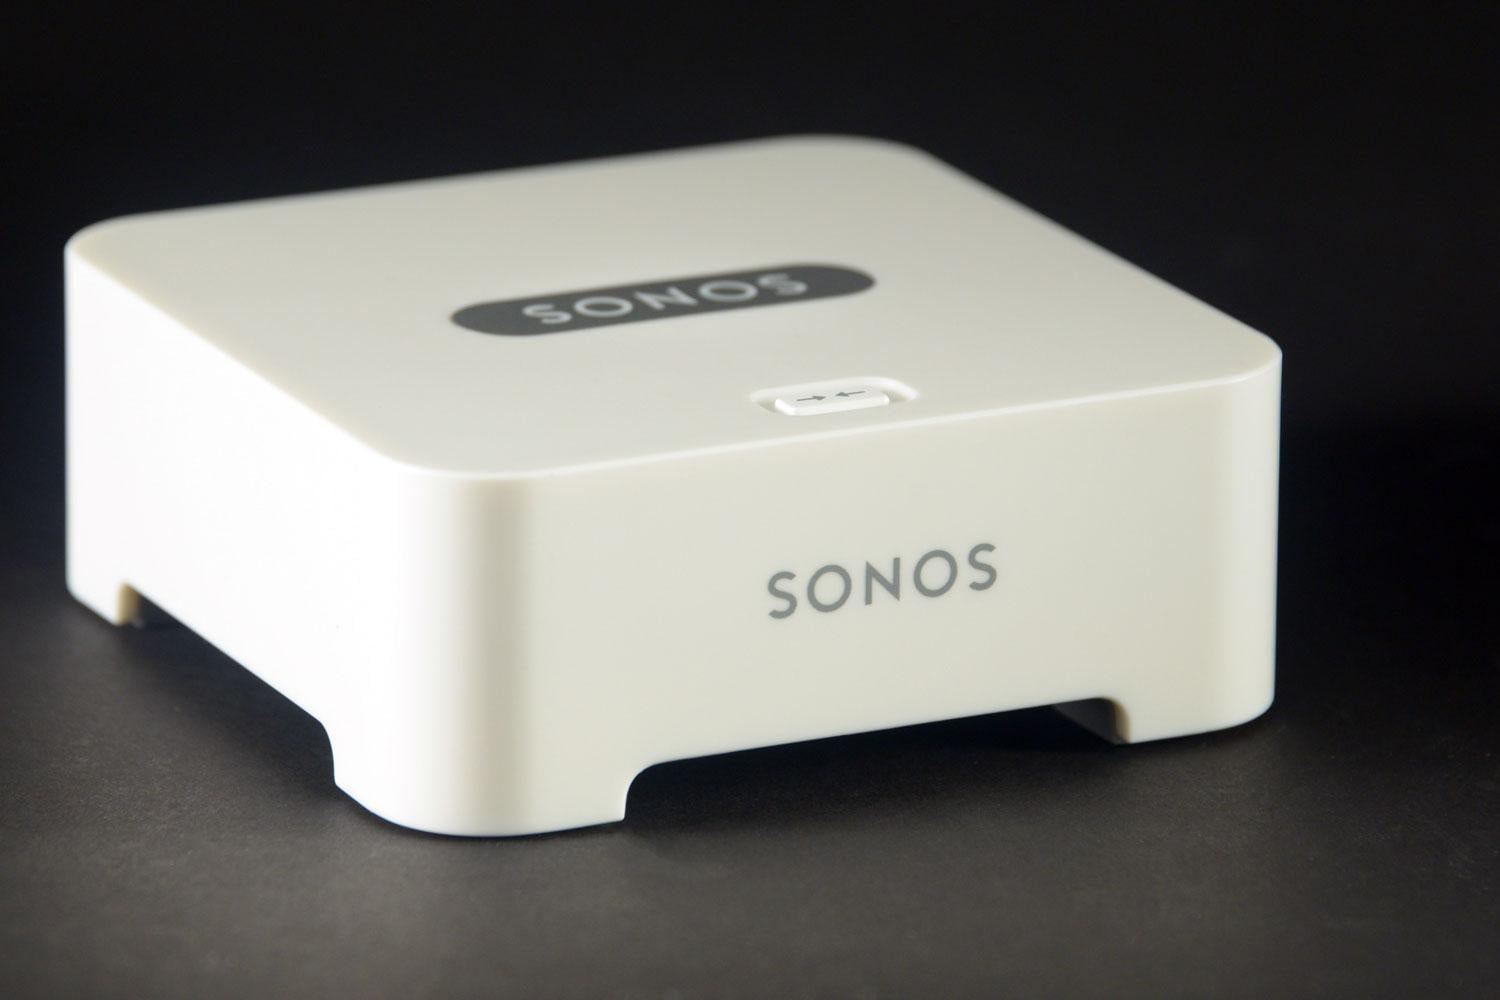 SONOS: A New Way to Play Everything!